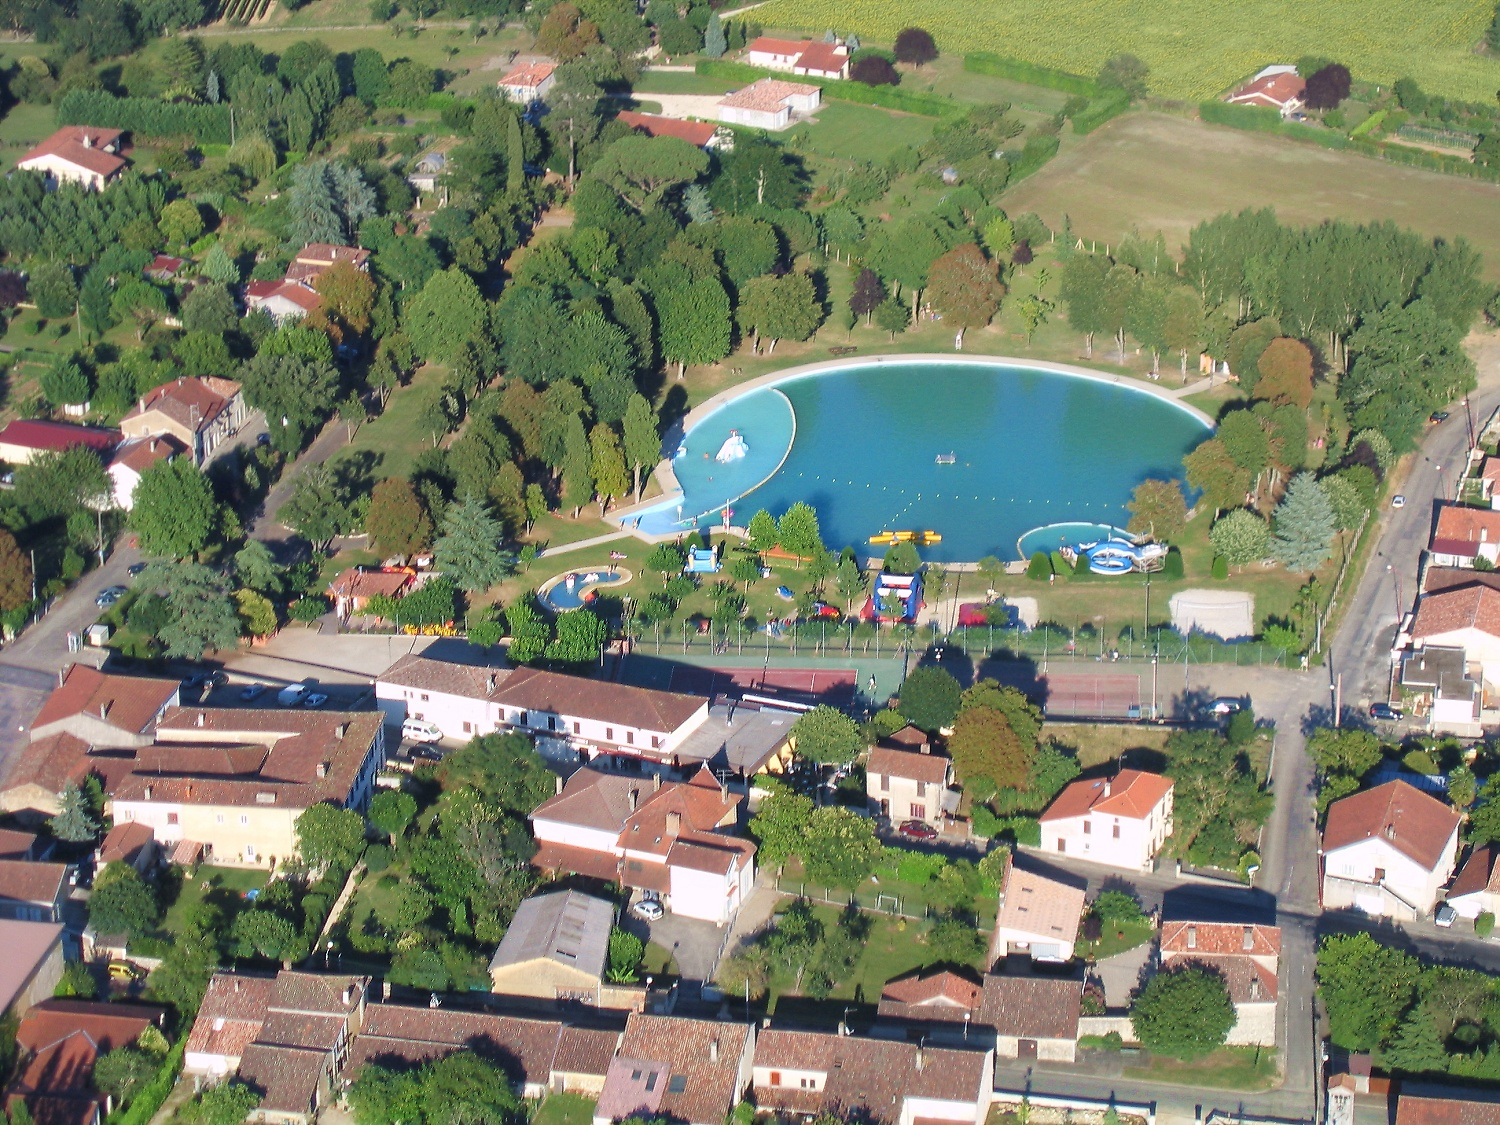 Photo aerienne de Gondrin